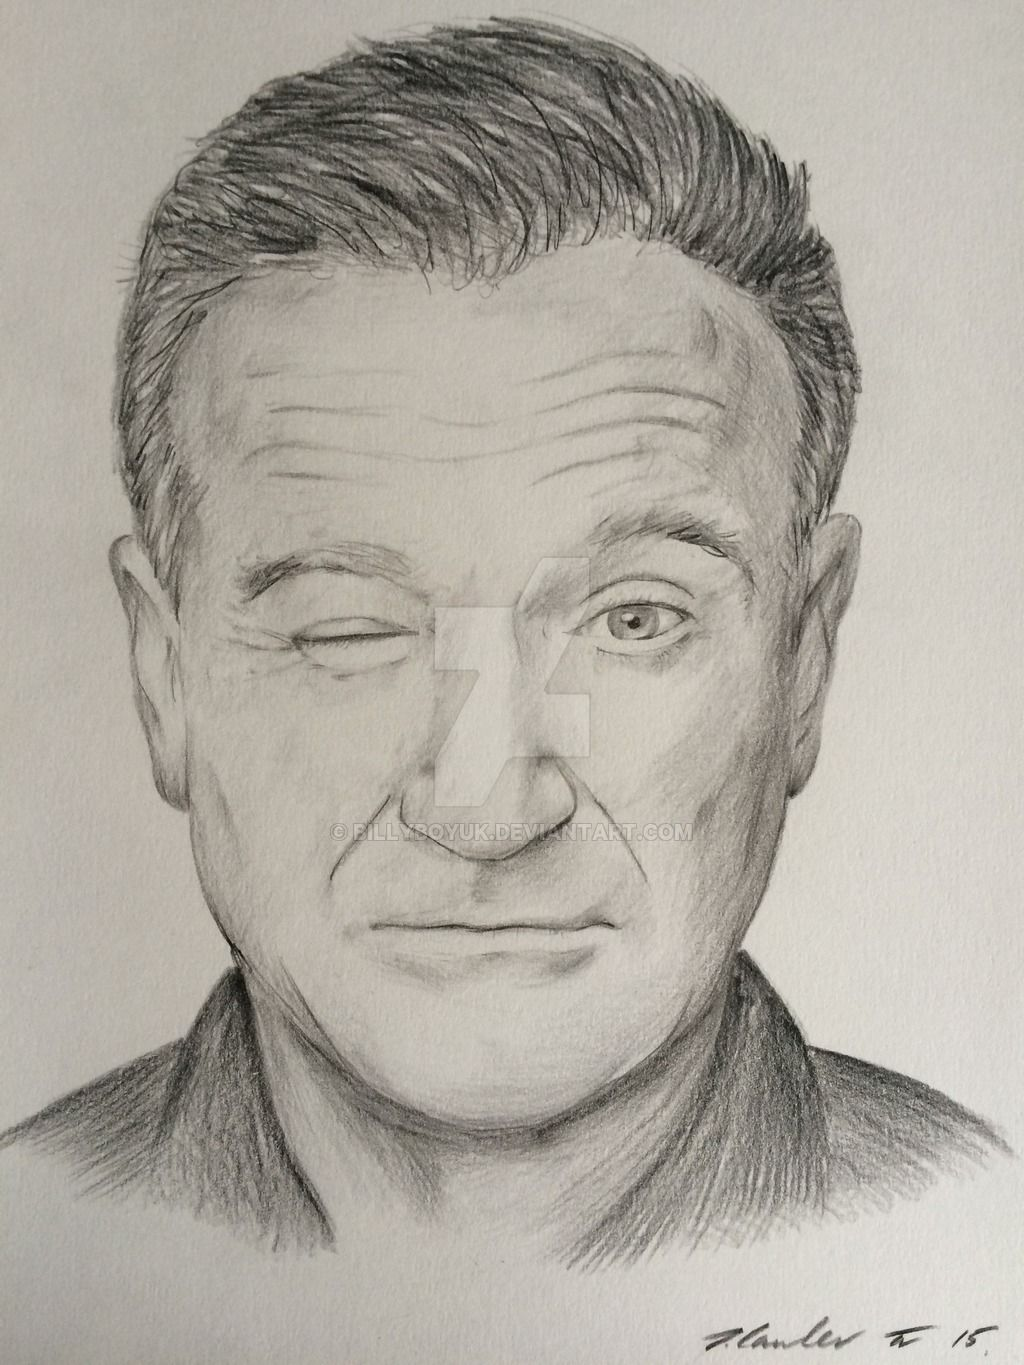 Robin williams pencil drawing by billyboyuk deviantart com on deviantart